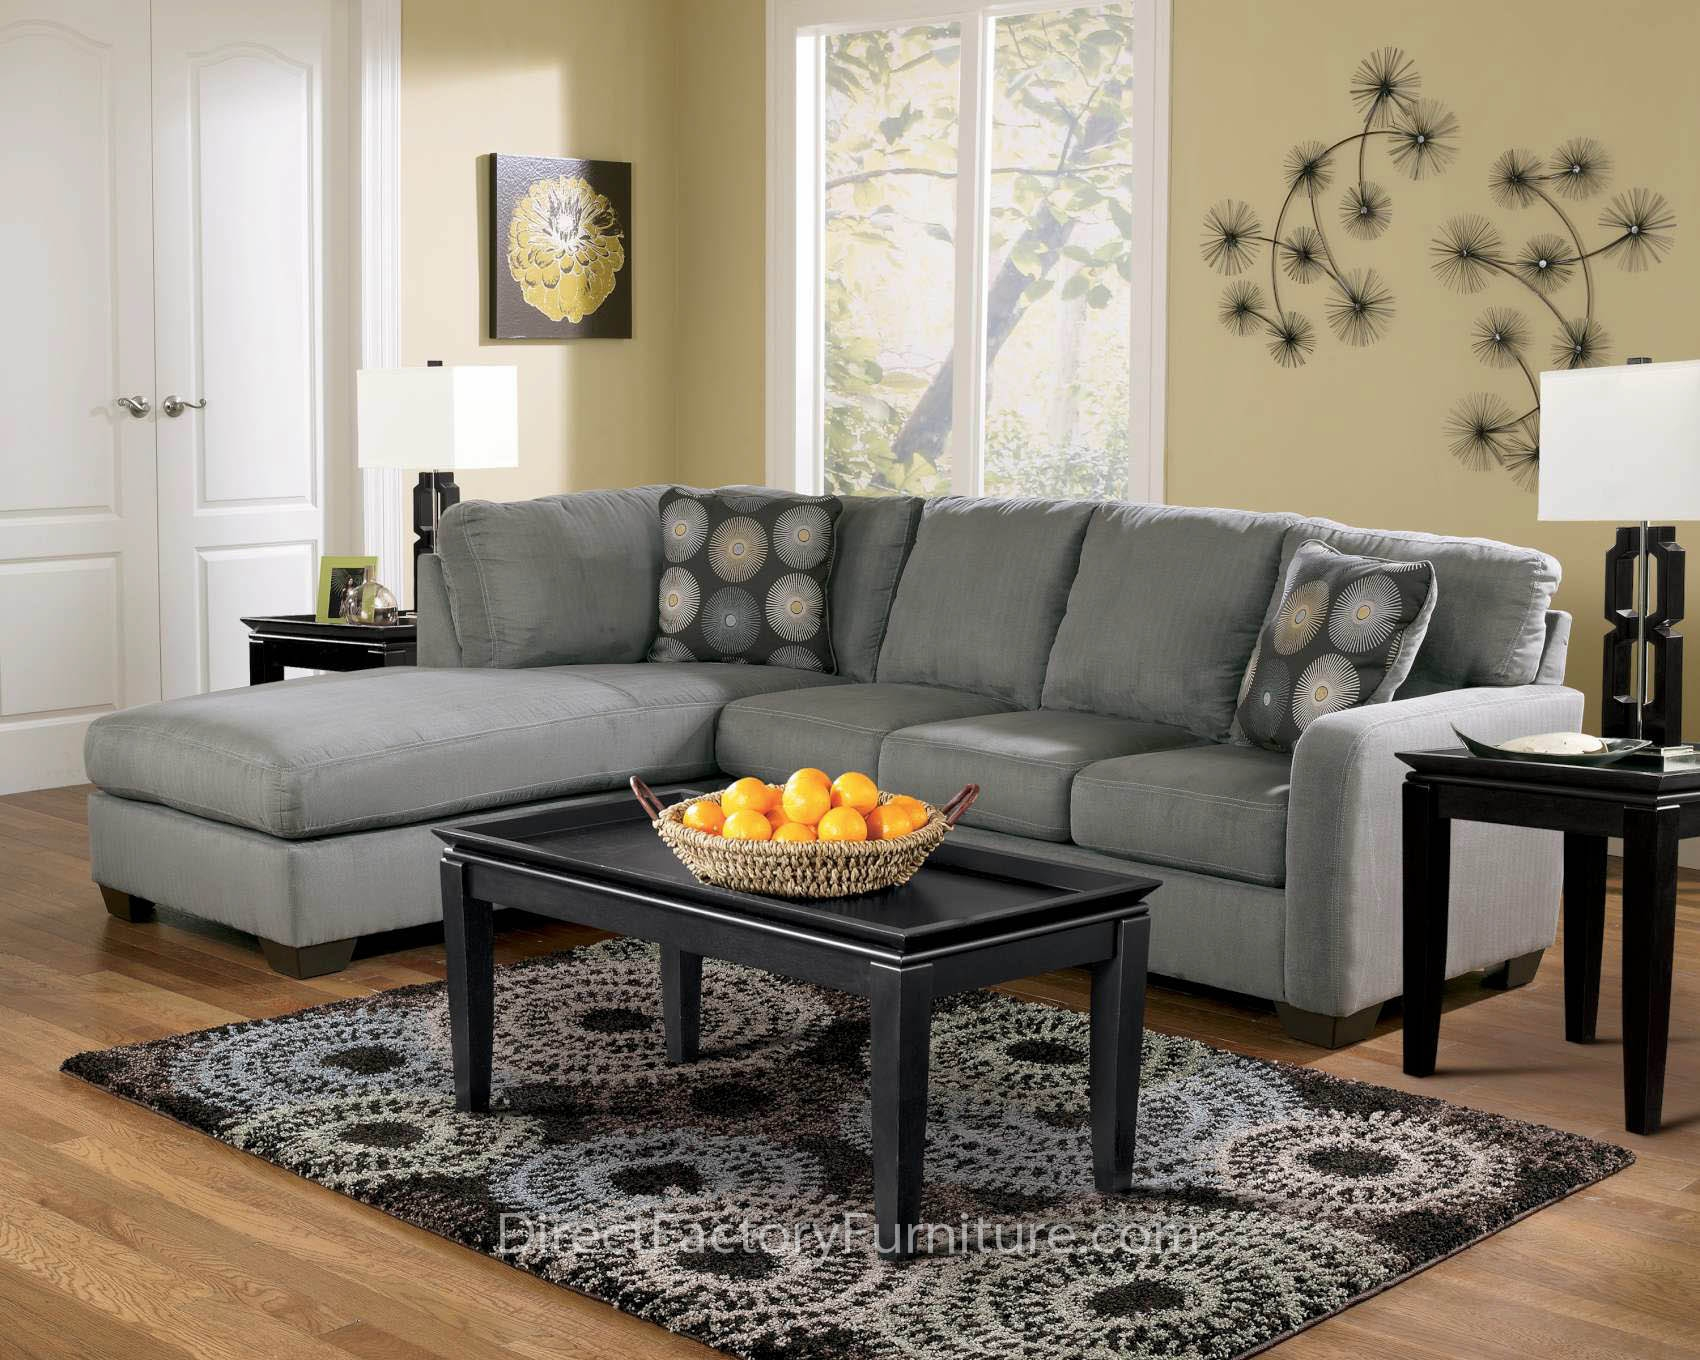 charming l shaped cheap sectional sofas in light slate grey on wooden floor plus cushion and floral carpet for living room decor ideas